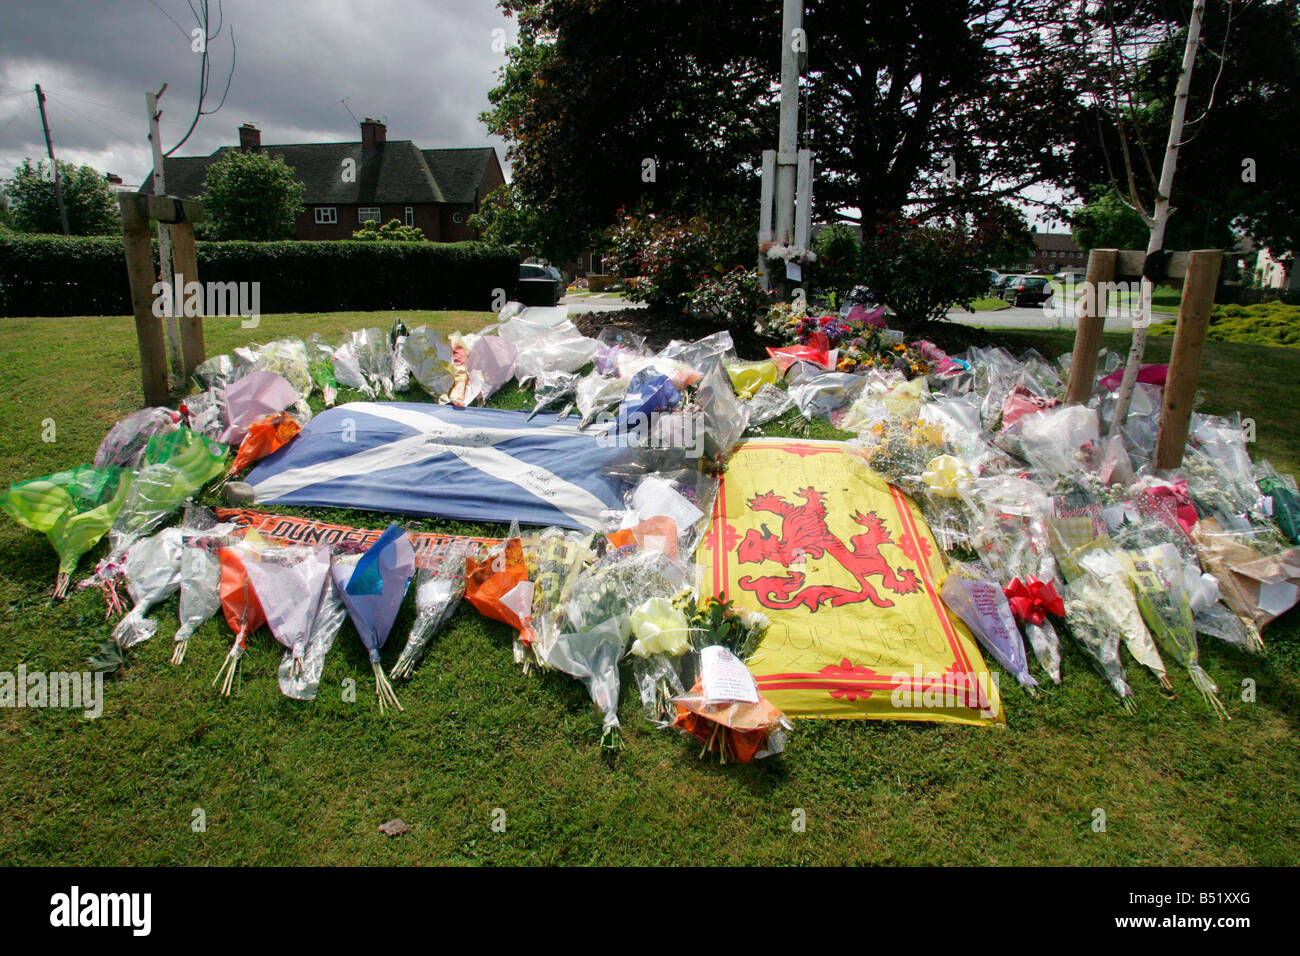 On The Day Of His Funeral Flowers Left Outside Police Station In